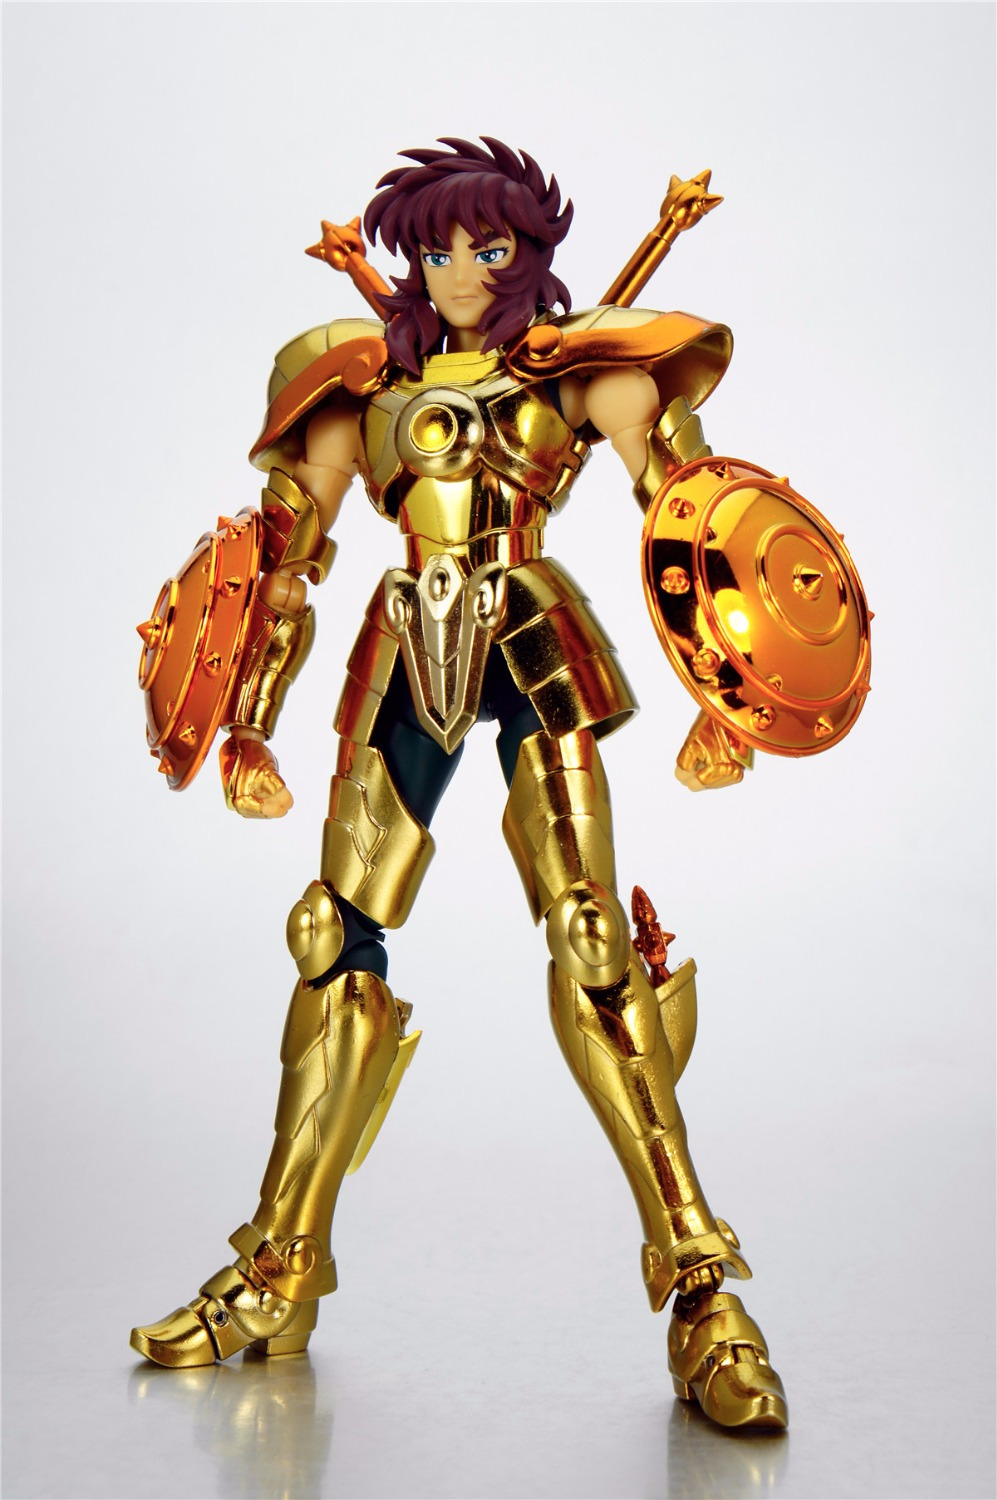 Speeding Model Libra Dohko action figure Saint Seiya Cloth Myth EX 2.0 metal armor CS Aurora model toy S13 qiumei winter women fur bomber hats real raccoon fur brown wine trapper hats caps pompom male russian bomber hat genuine fur